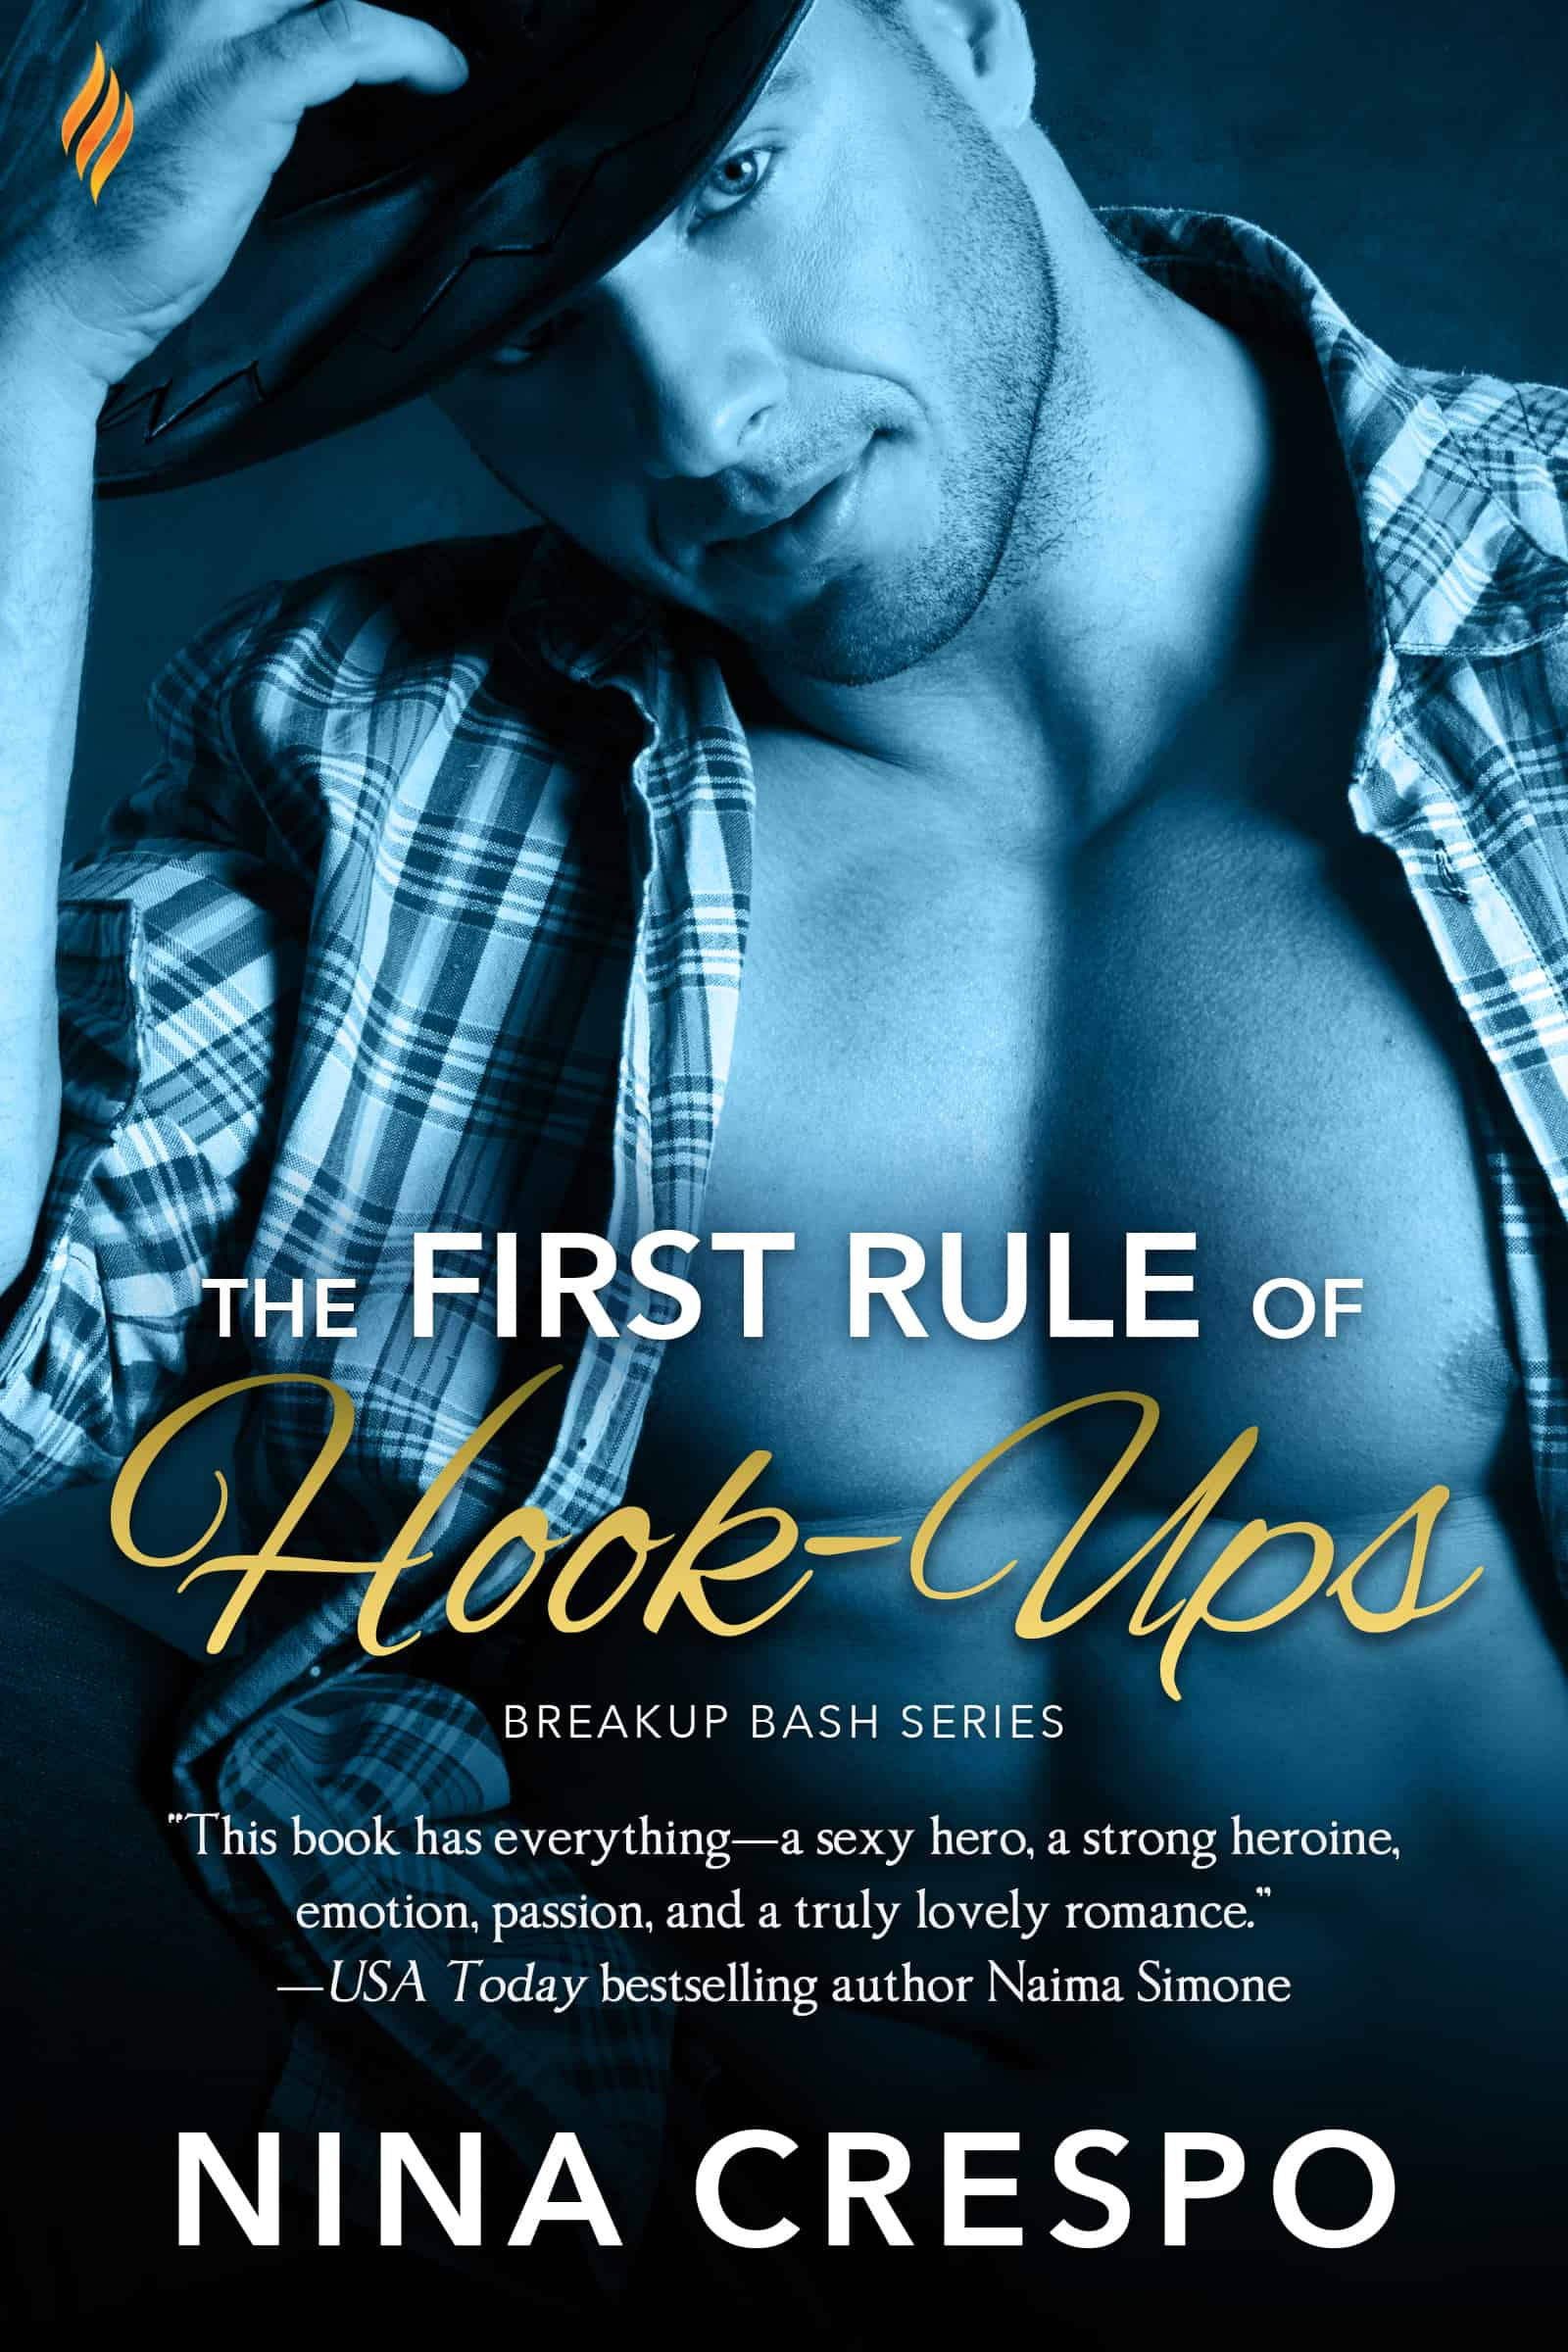 Hook up rules guys